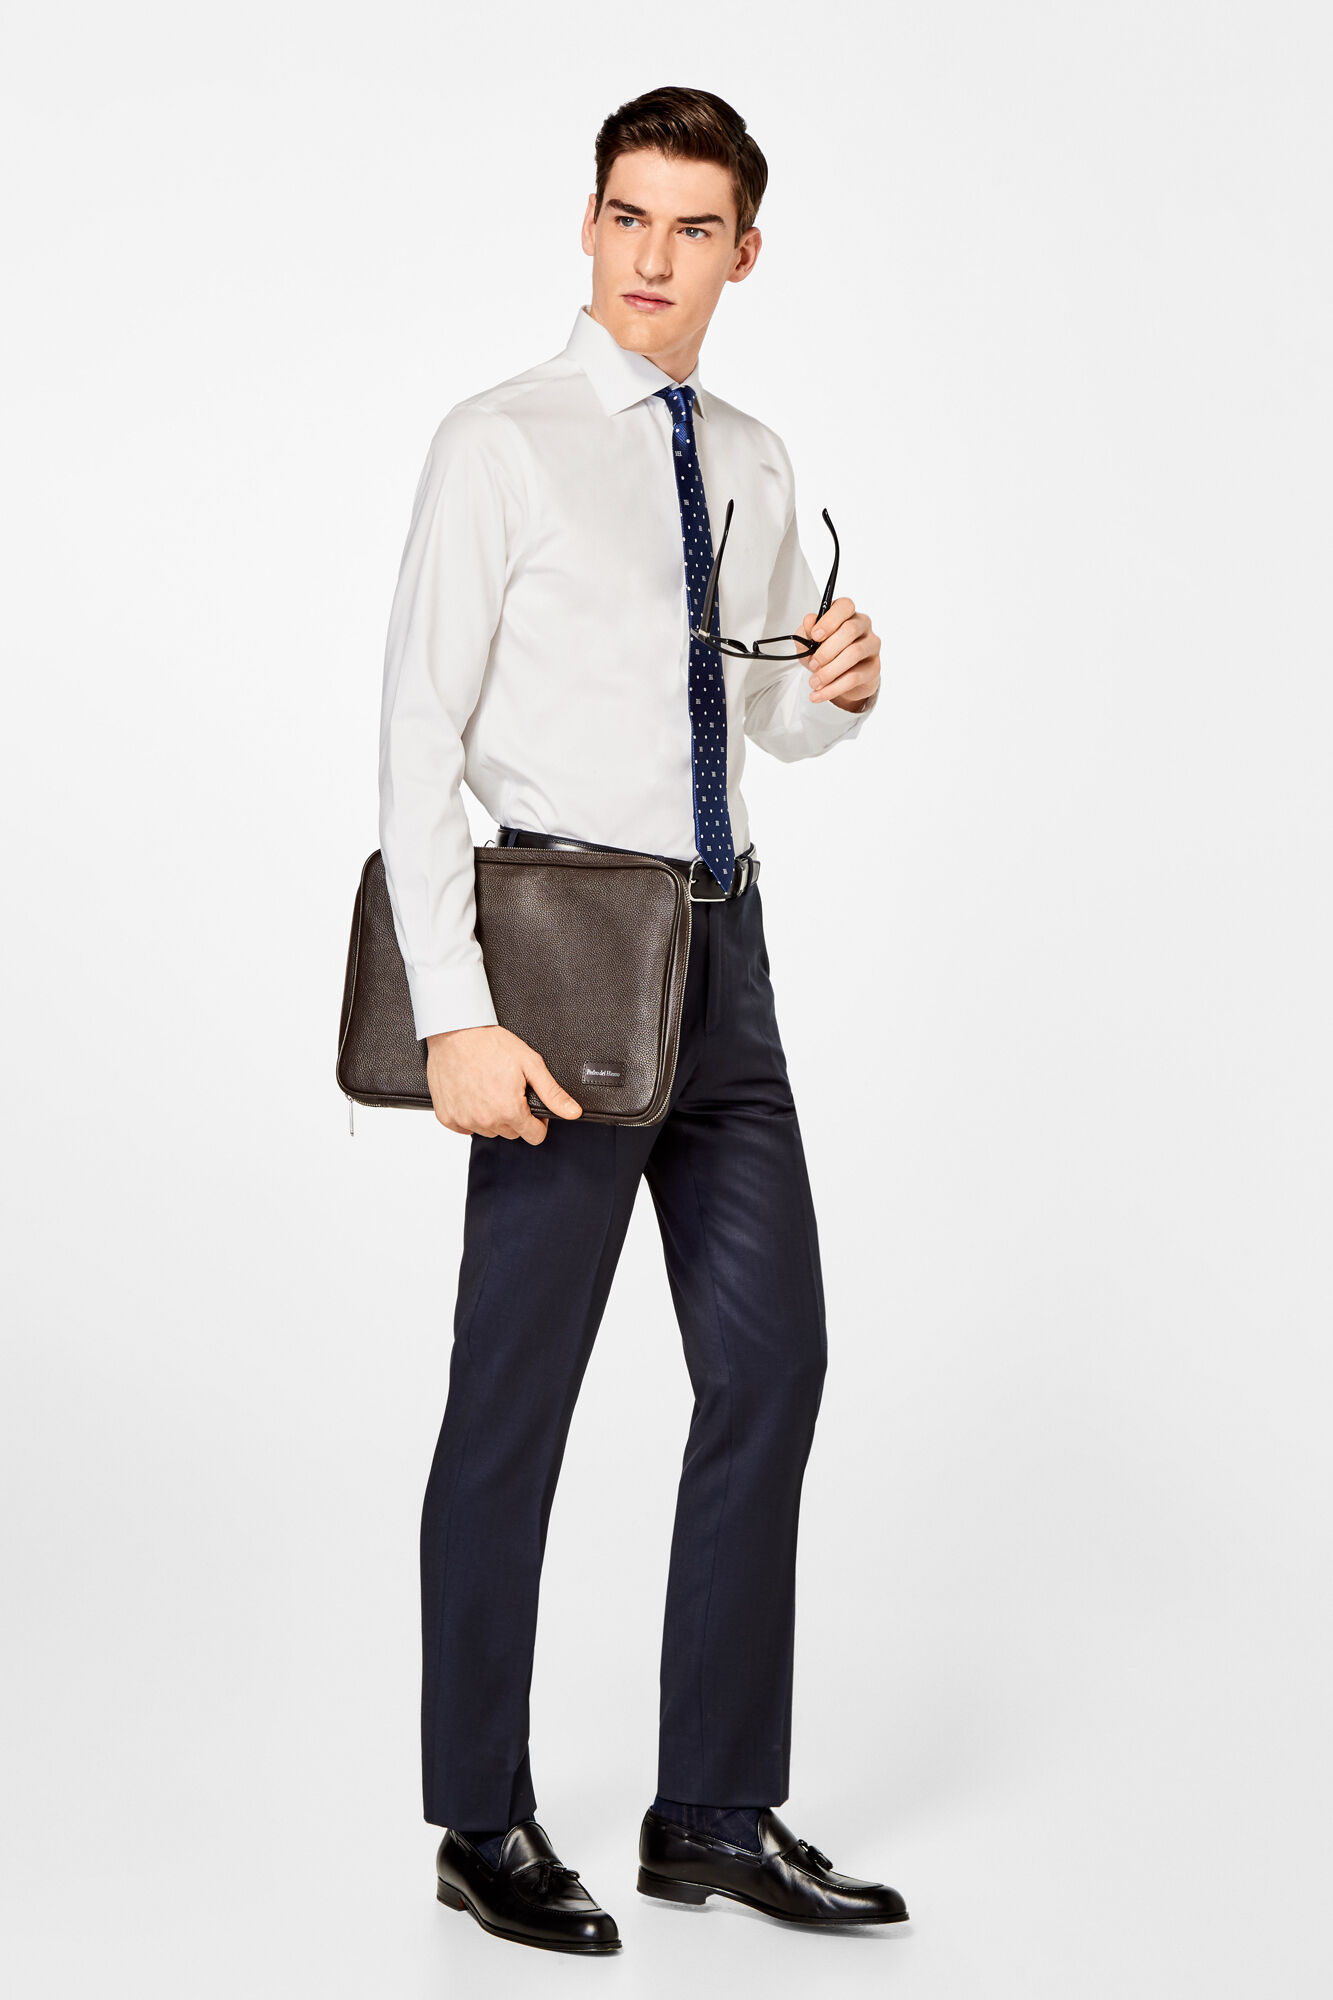 Plain Tailored Dress Shirt Shirts Pedro Del Hierro Man Woman